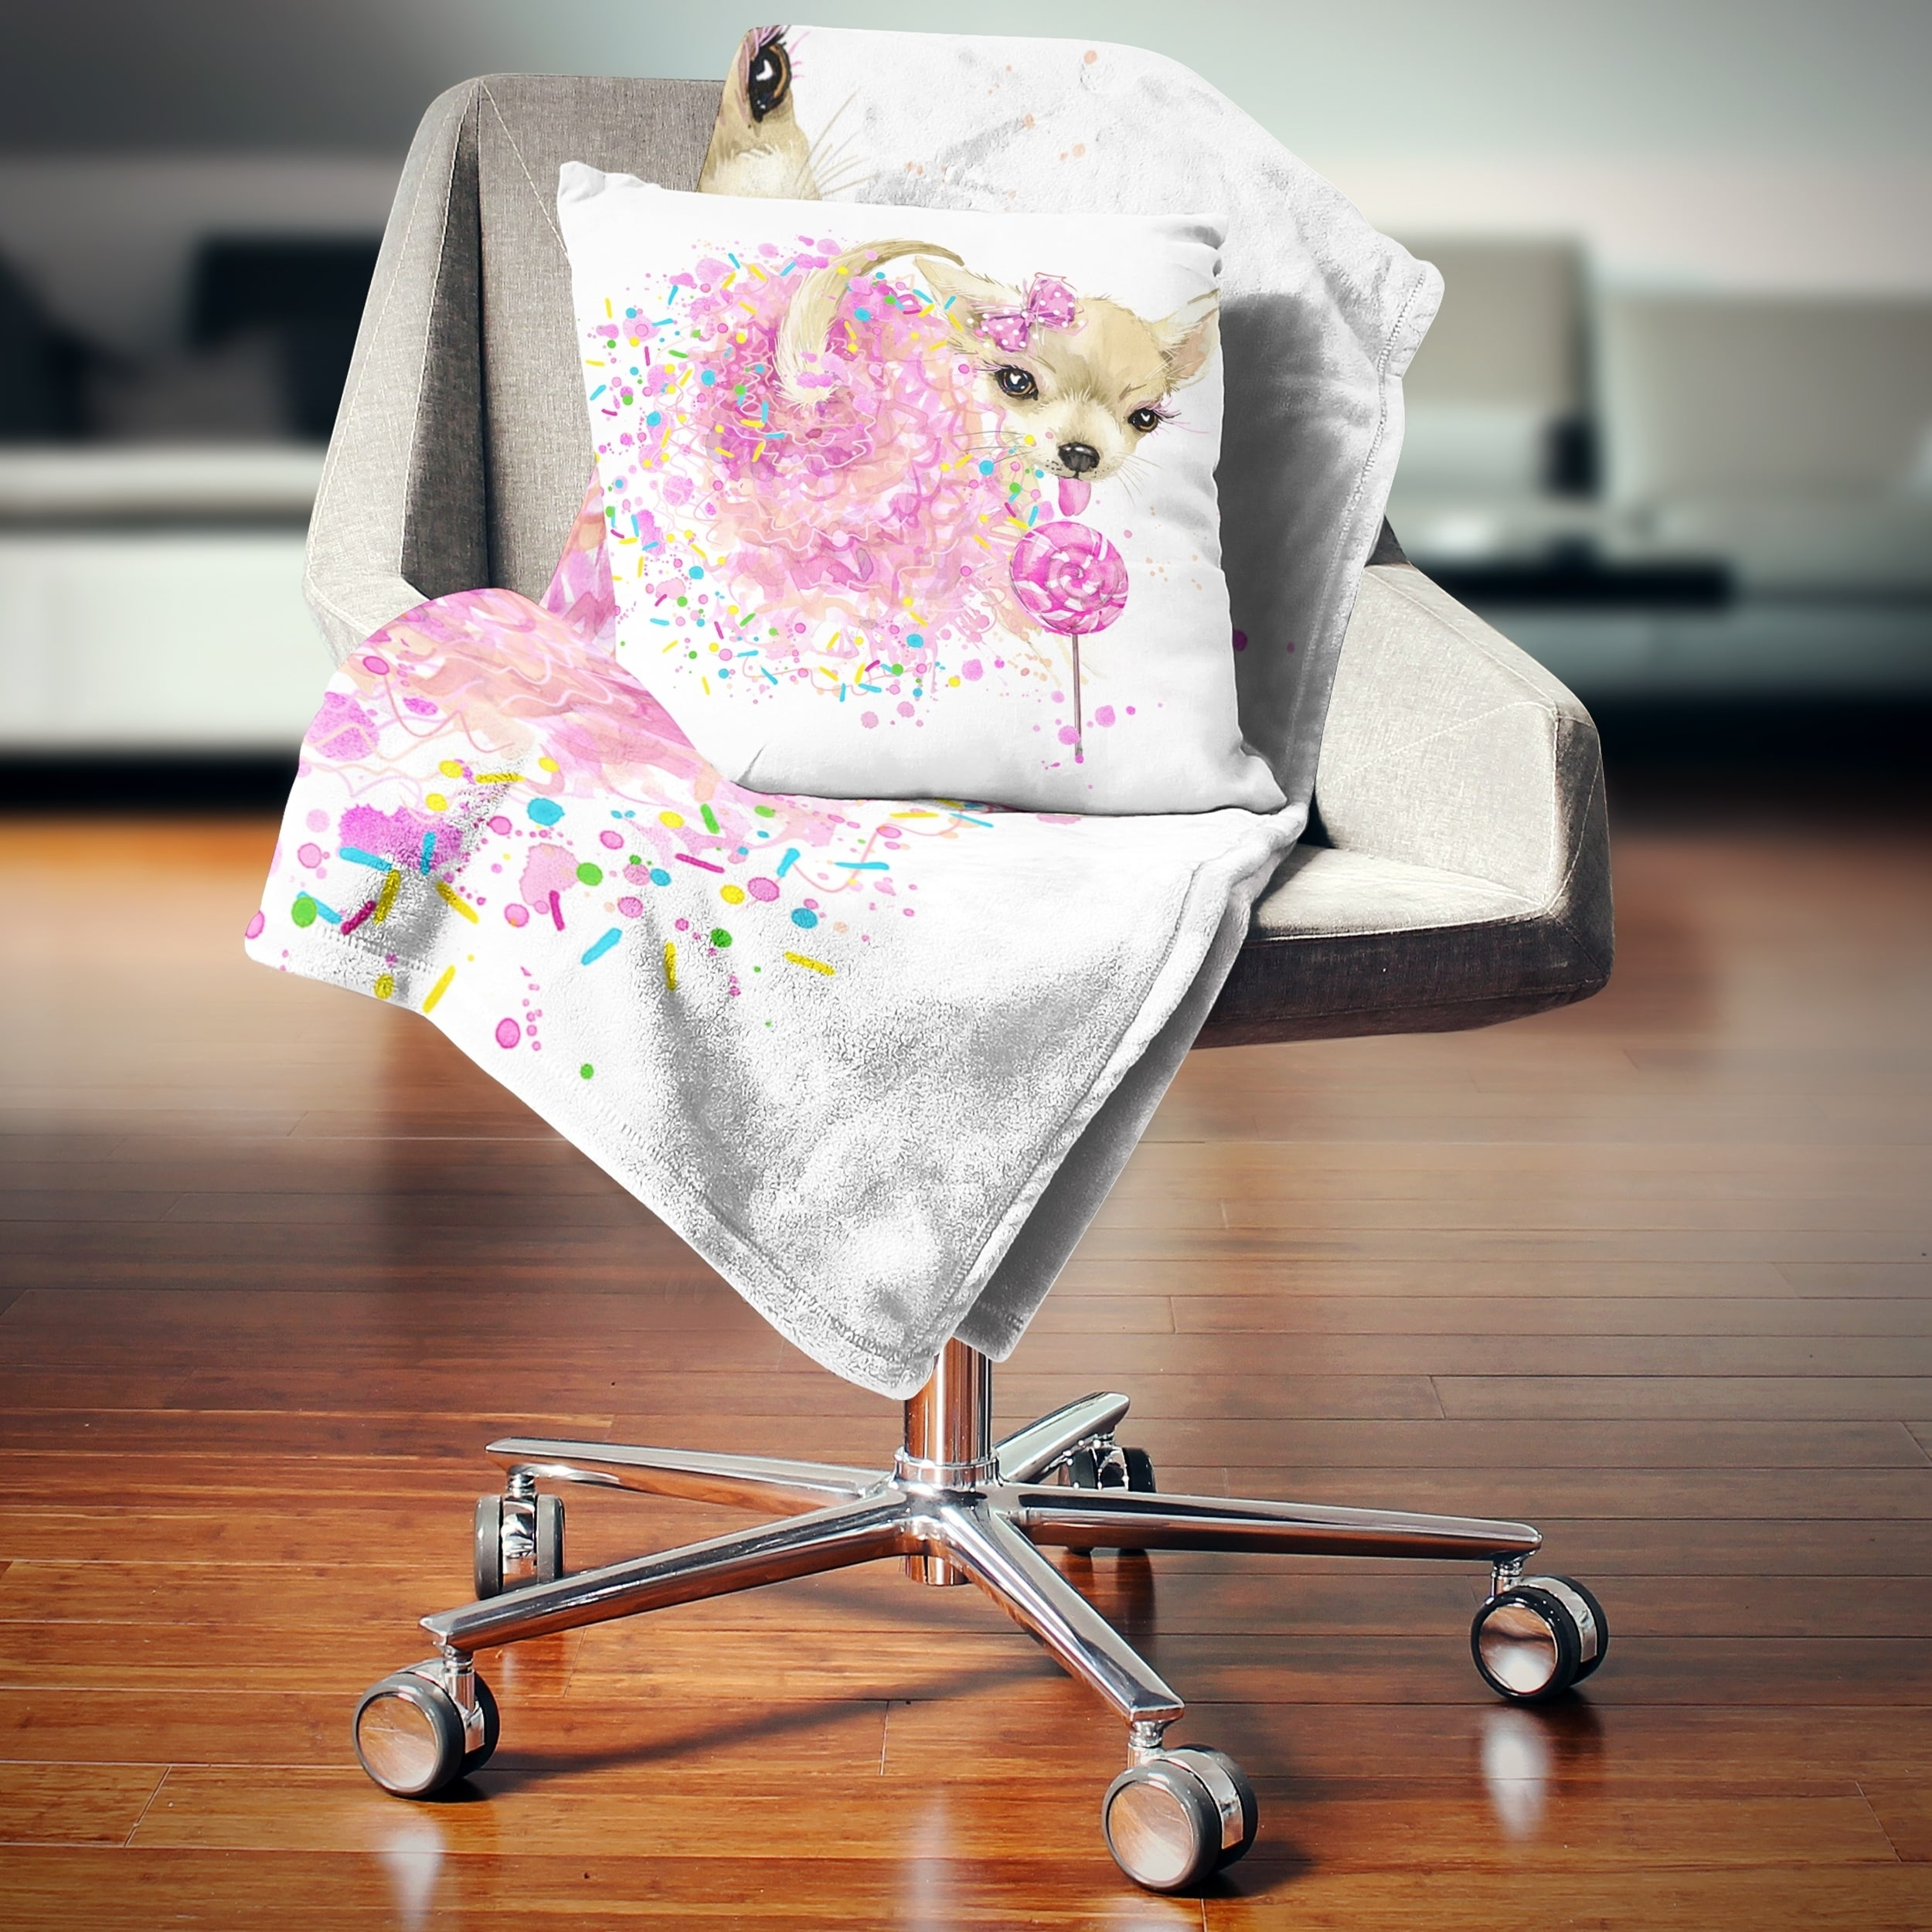 Designart Sweet Pink Dog Without Glasses Animal Throw Blanket On Sale Overstock 20916271 59 In X 71 In